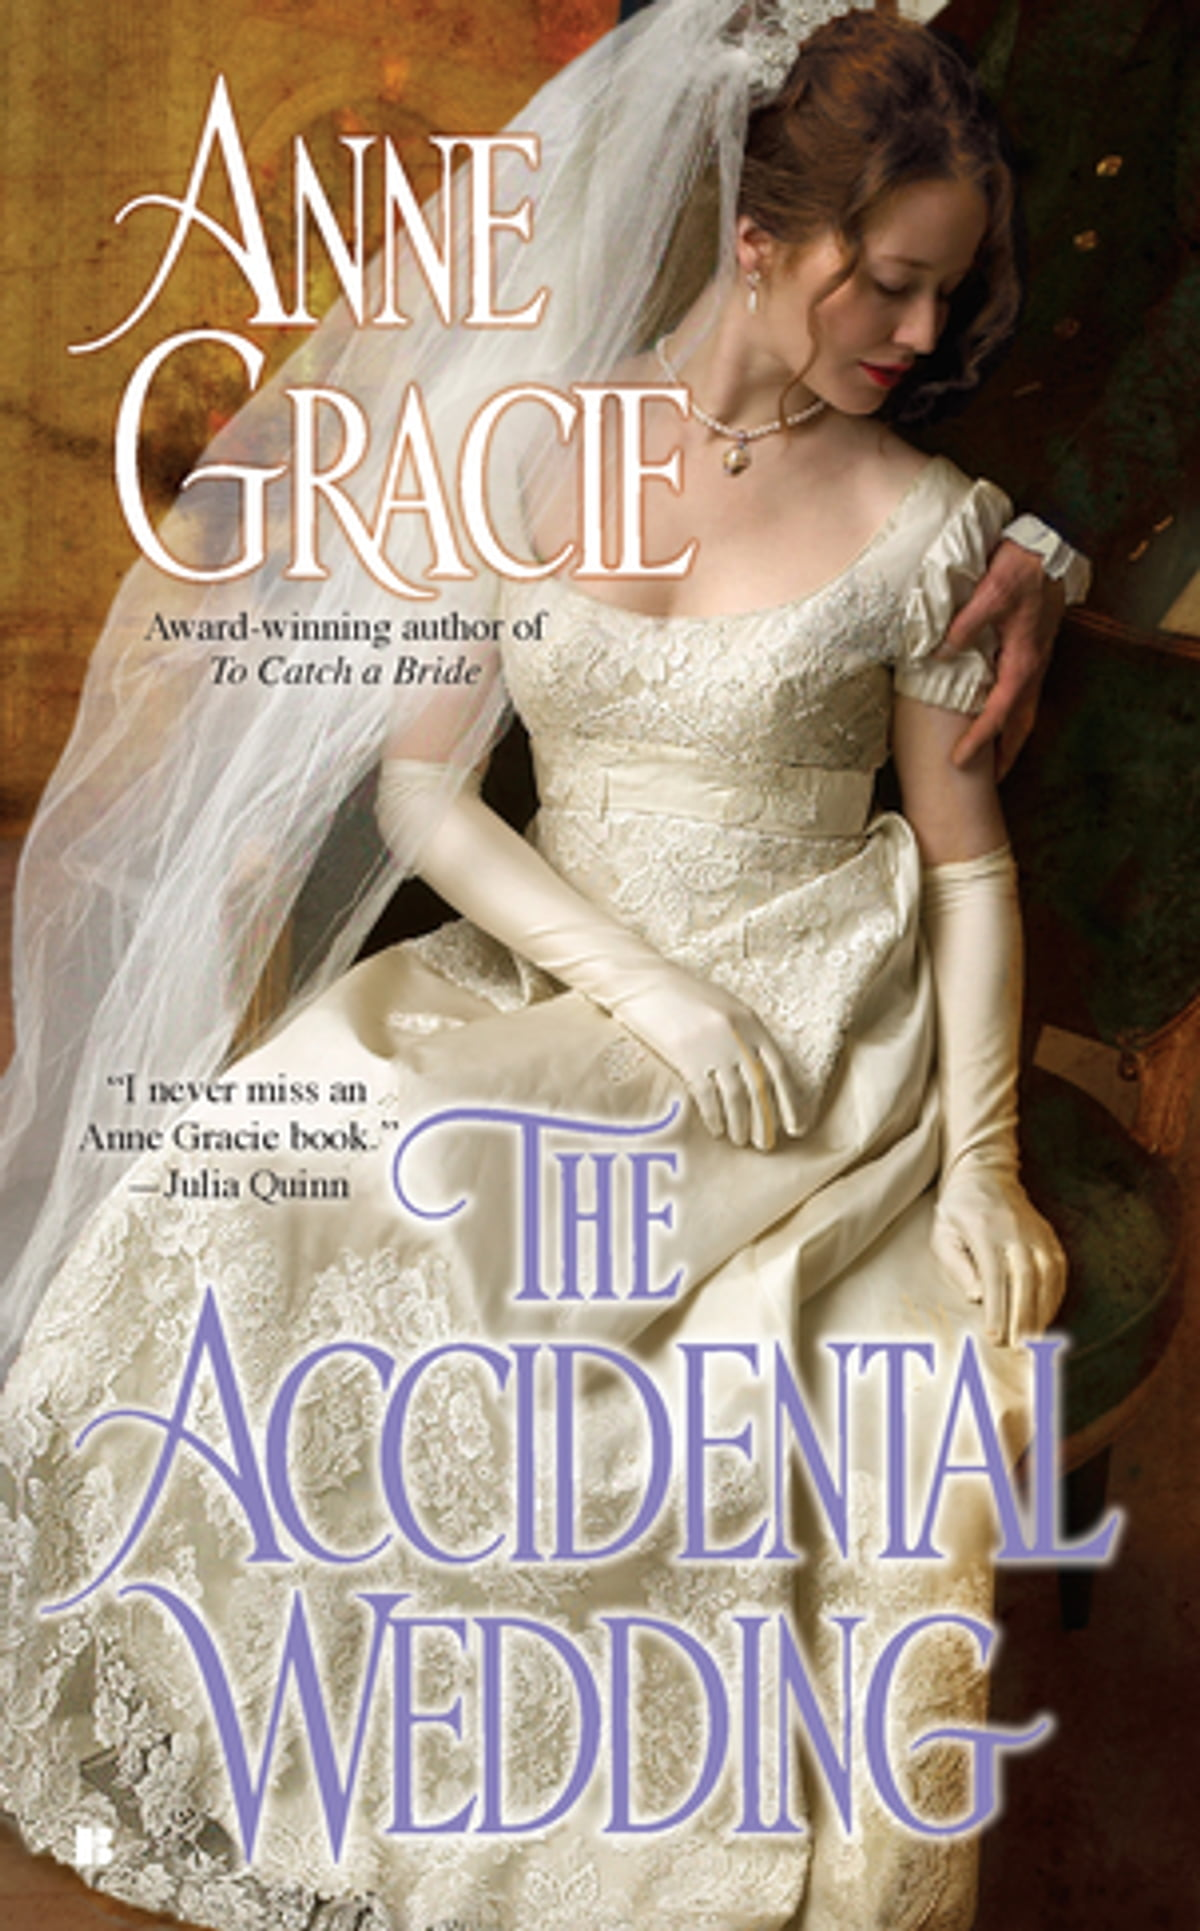 The accidental wedding ebook by anne gracie 9781101444009 the accidental wedding ebook by anne gracie 9781101444009 rakuten kobo fandeluxe Document